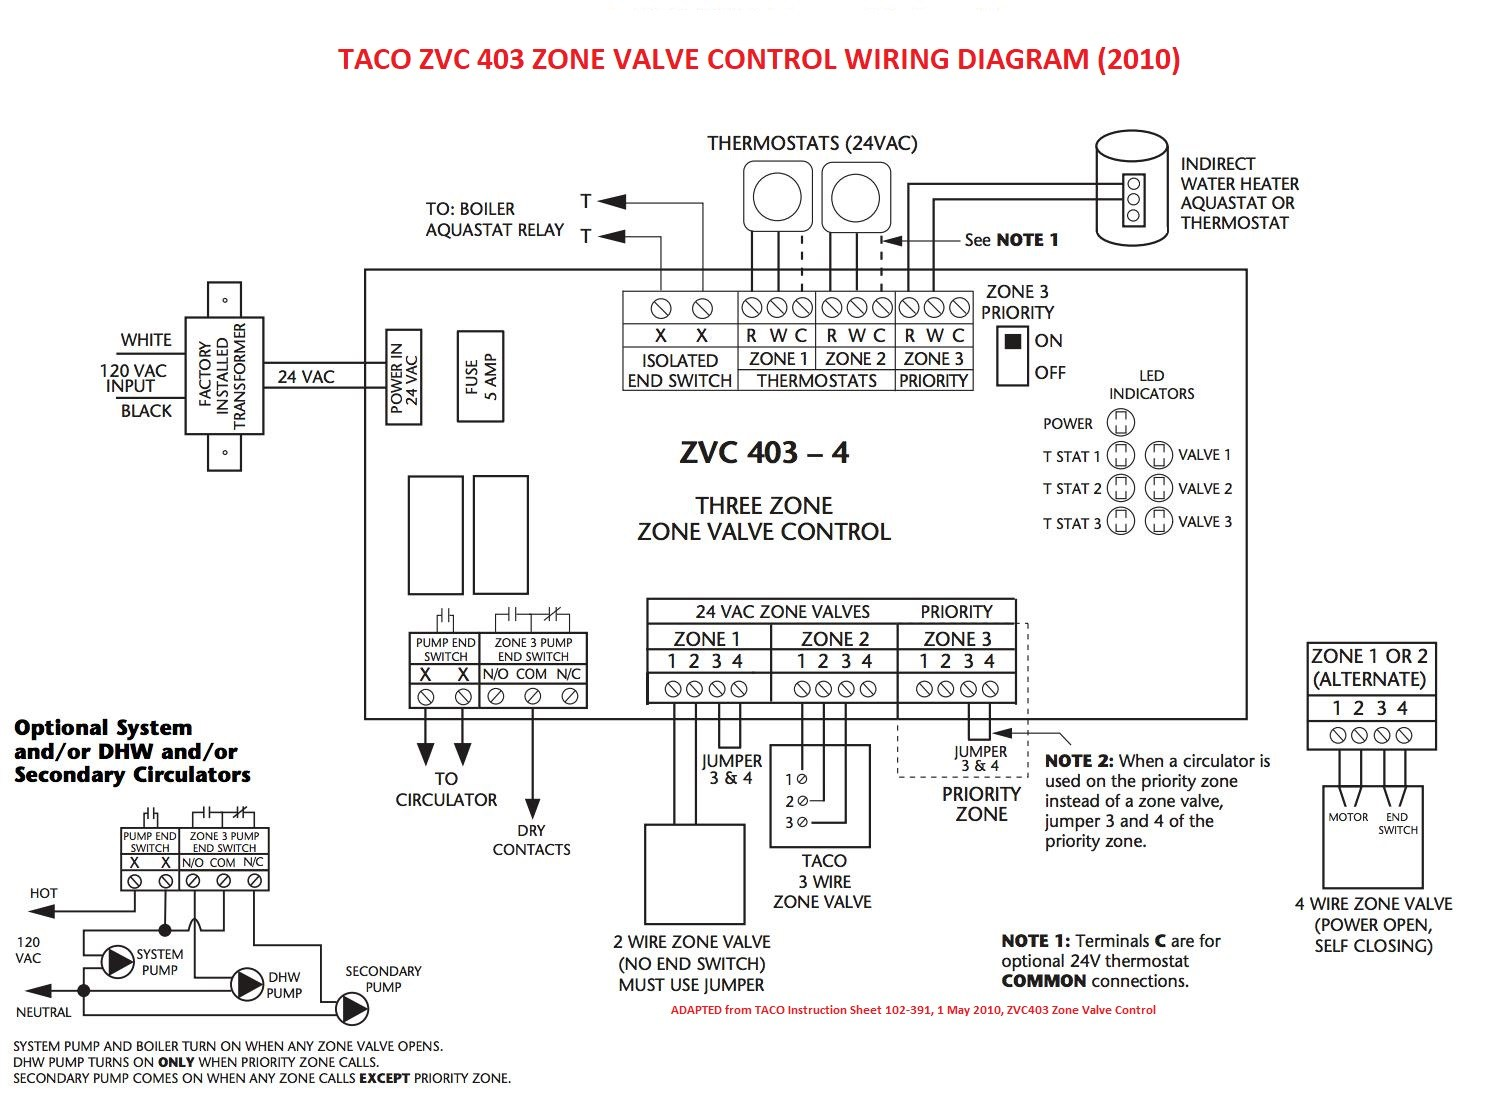 lace alumitone wiring mb 7191  sustainer wiring diagram download diagram  mb 7191  sustainer wiring diagram